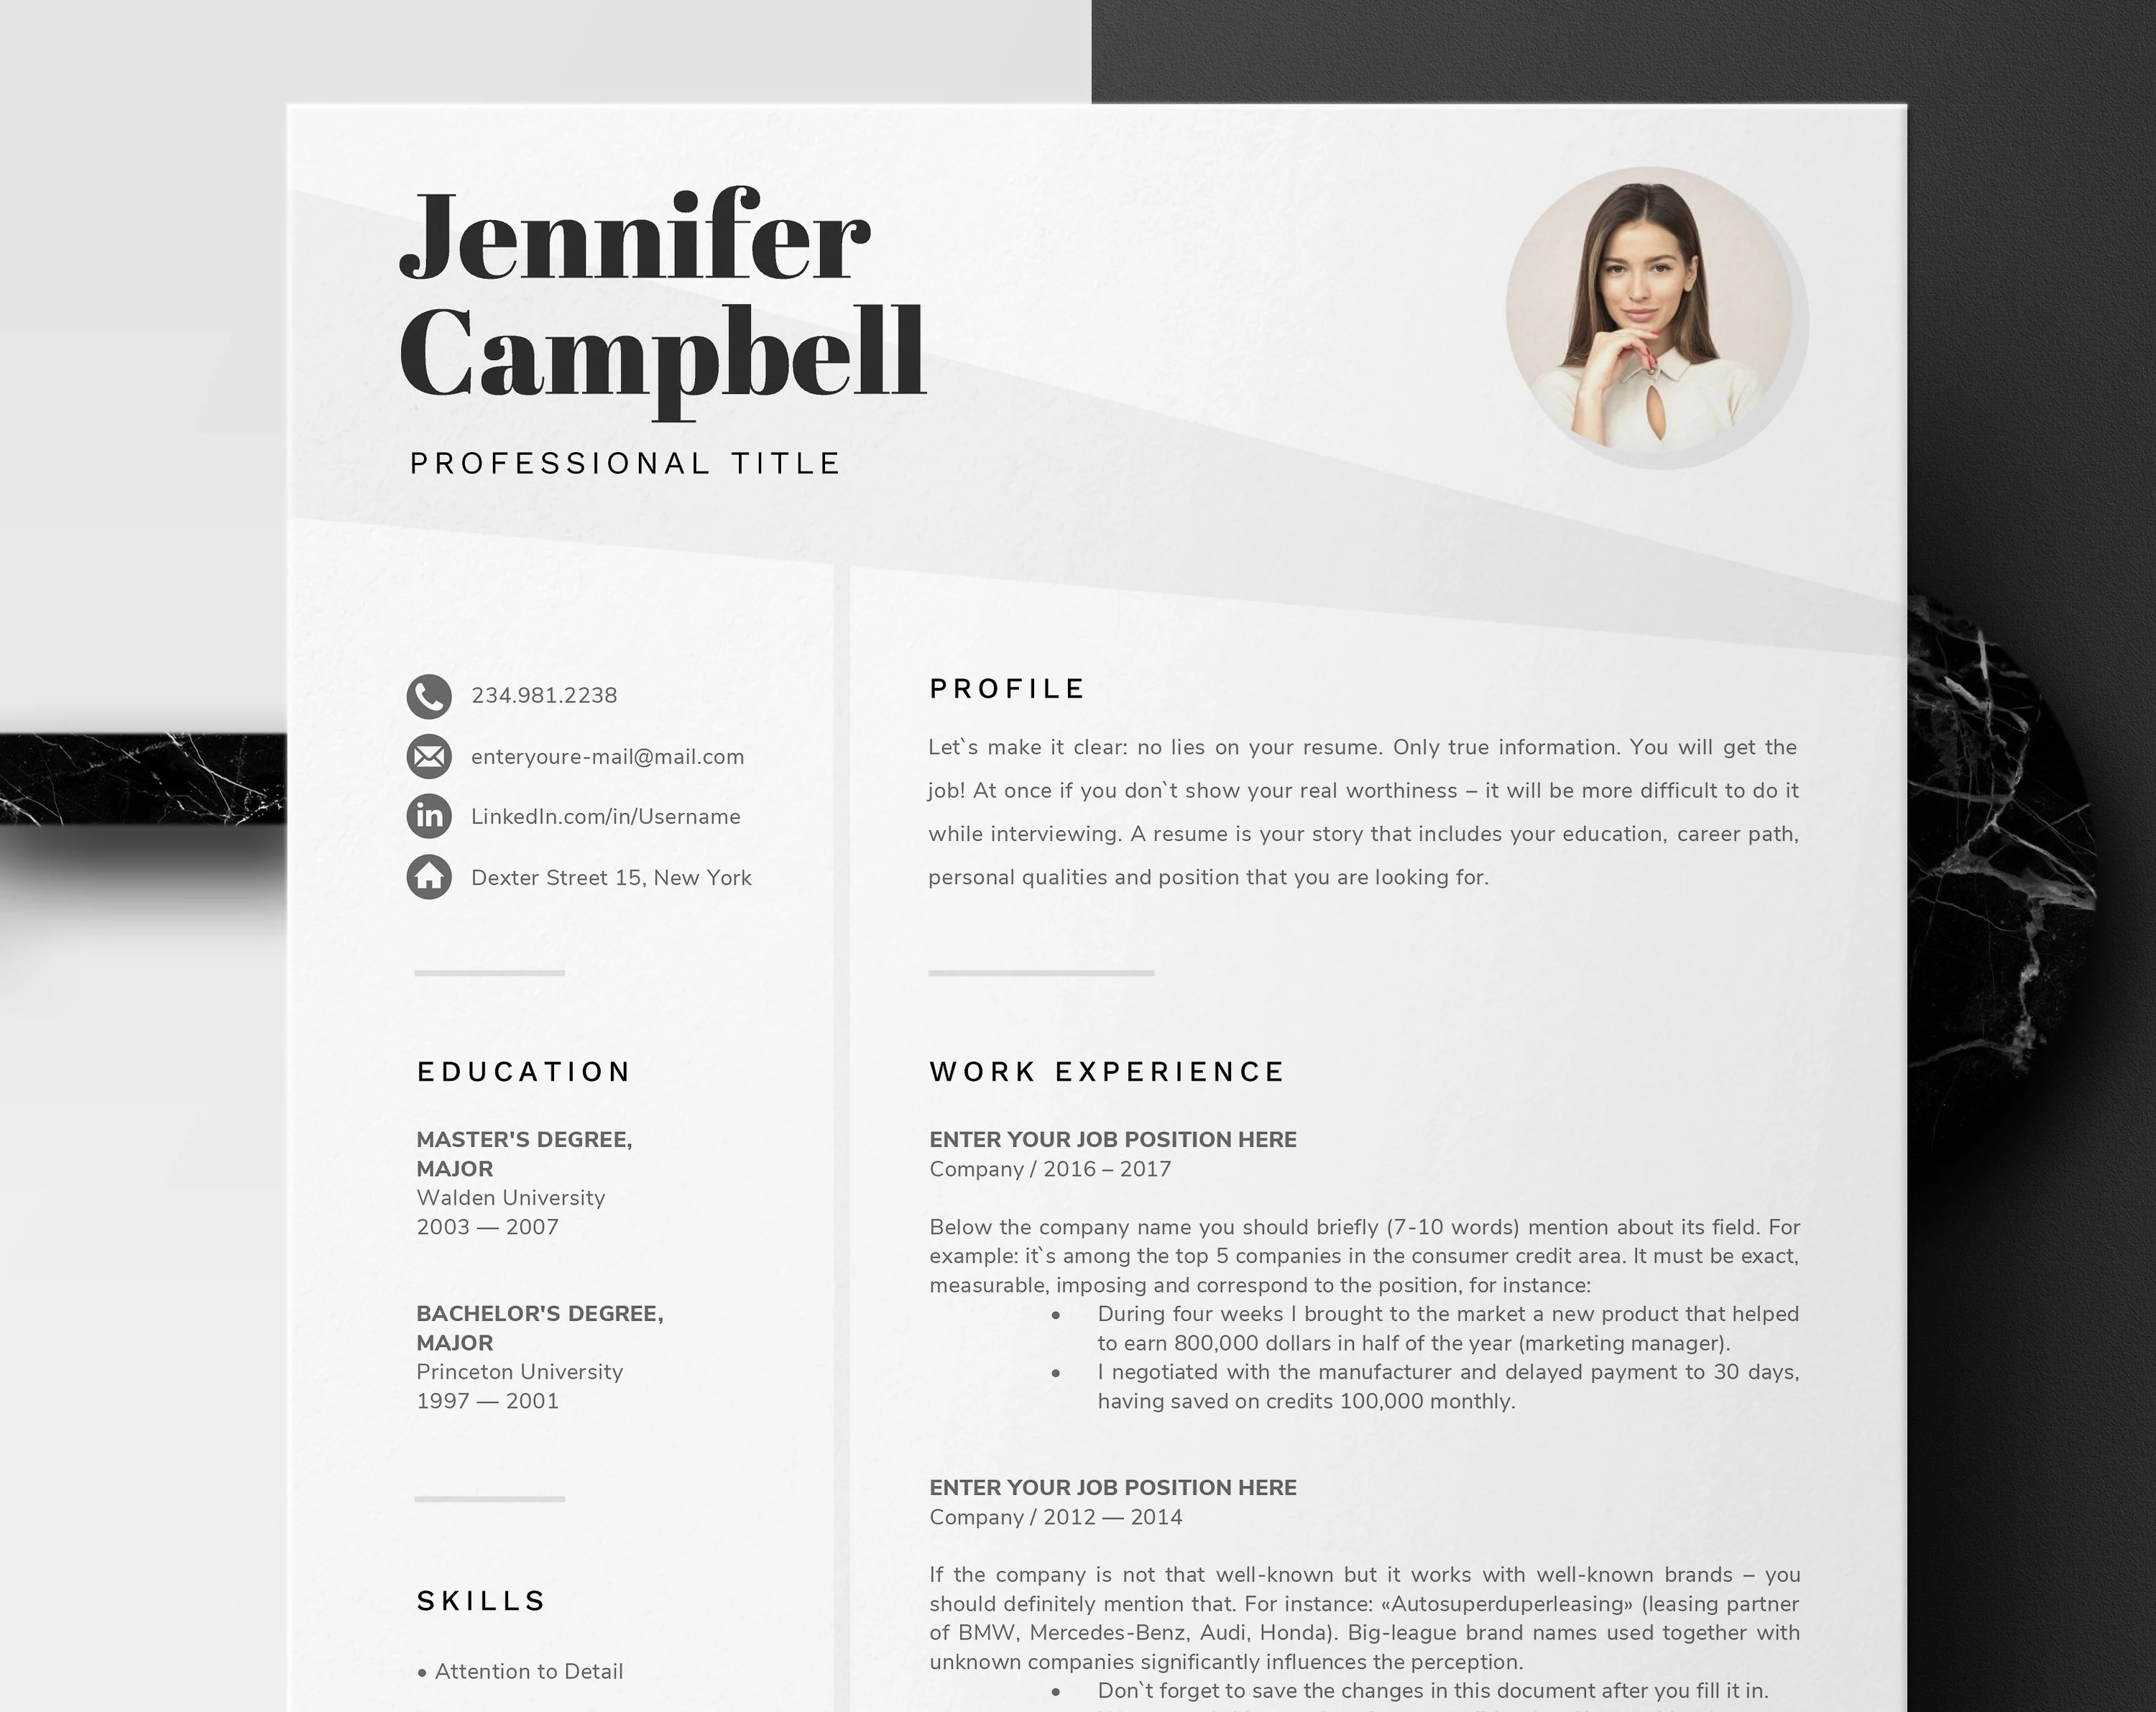 Microsoft Word Resume Template Microsoft Word Resume Template Creative Resume Design With Photo Cv Template For Word Professional Resume 1 And 2 Page Instant Download